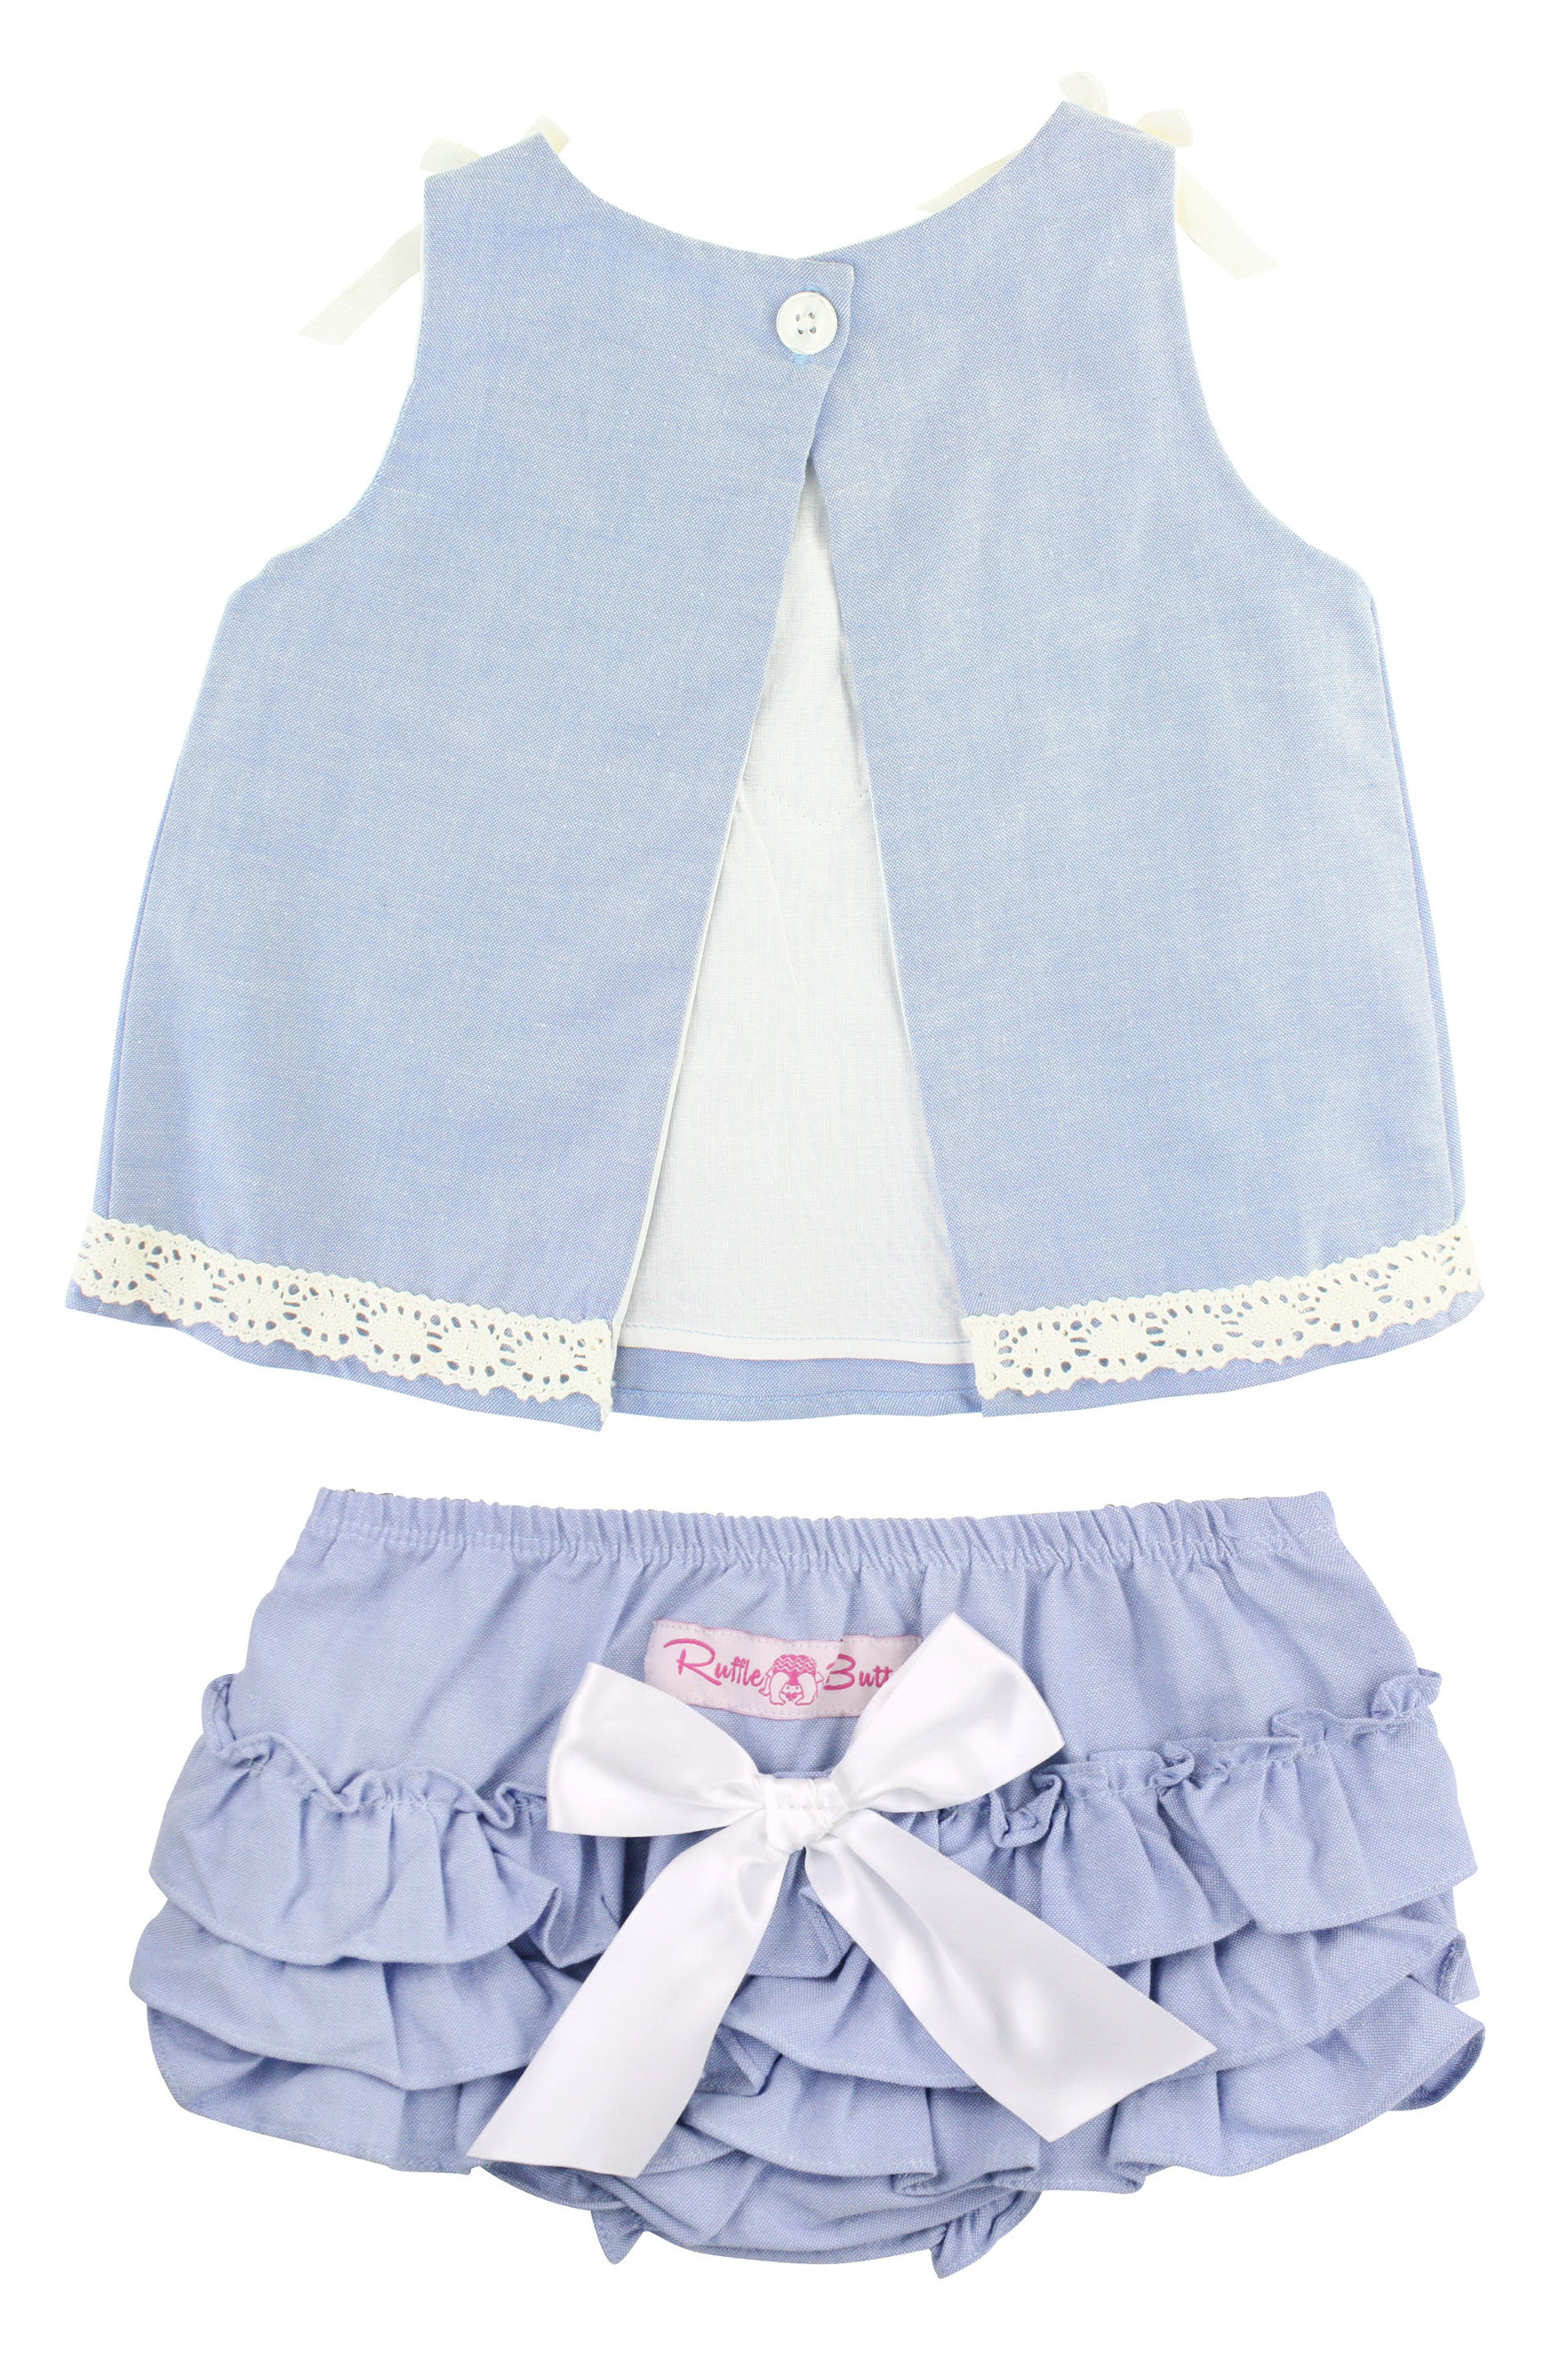 Chambray Swing Top & Ruffle Bloomers Set,                             Alternate thumbnail 2, color,                             400